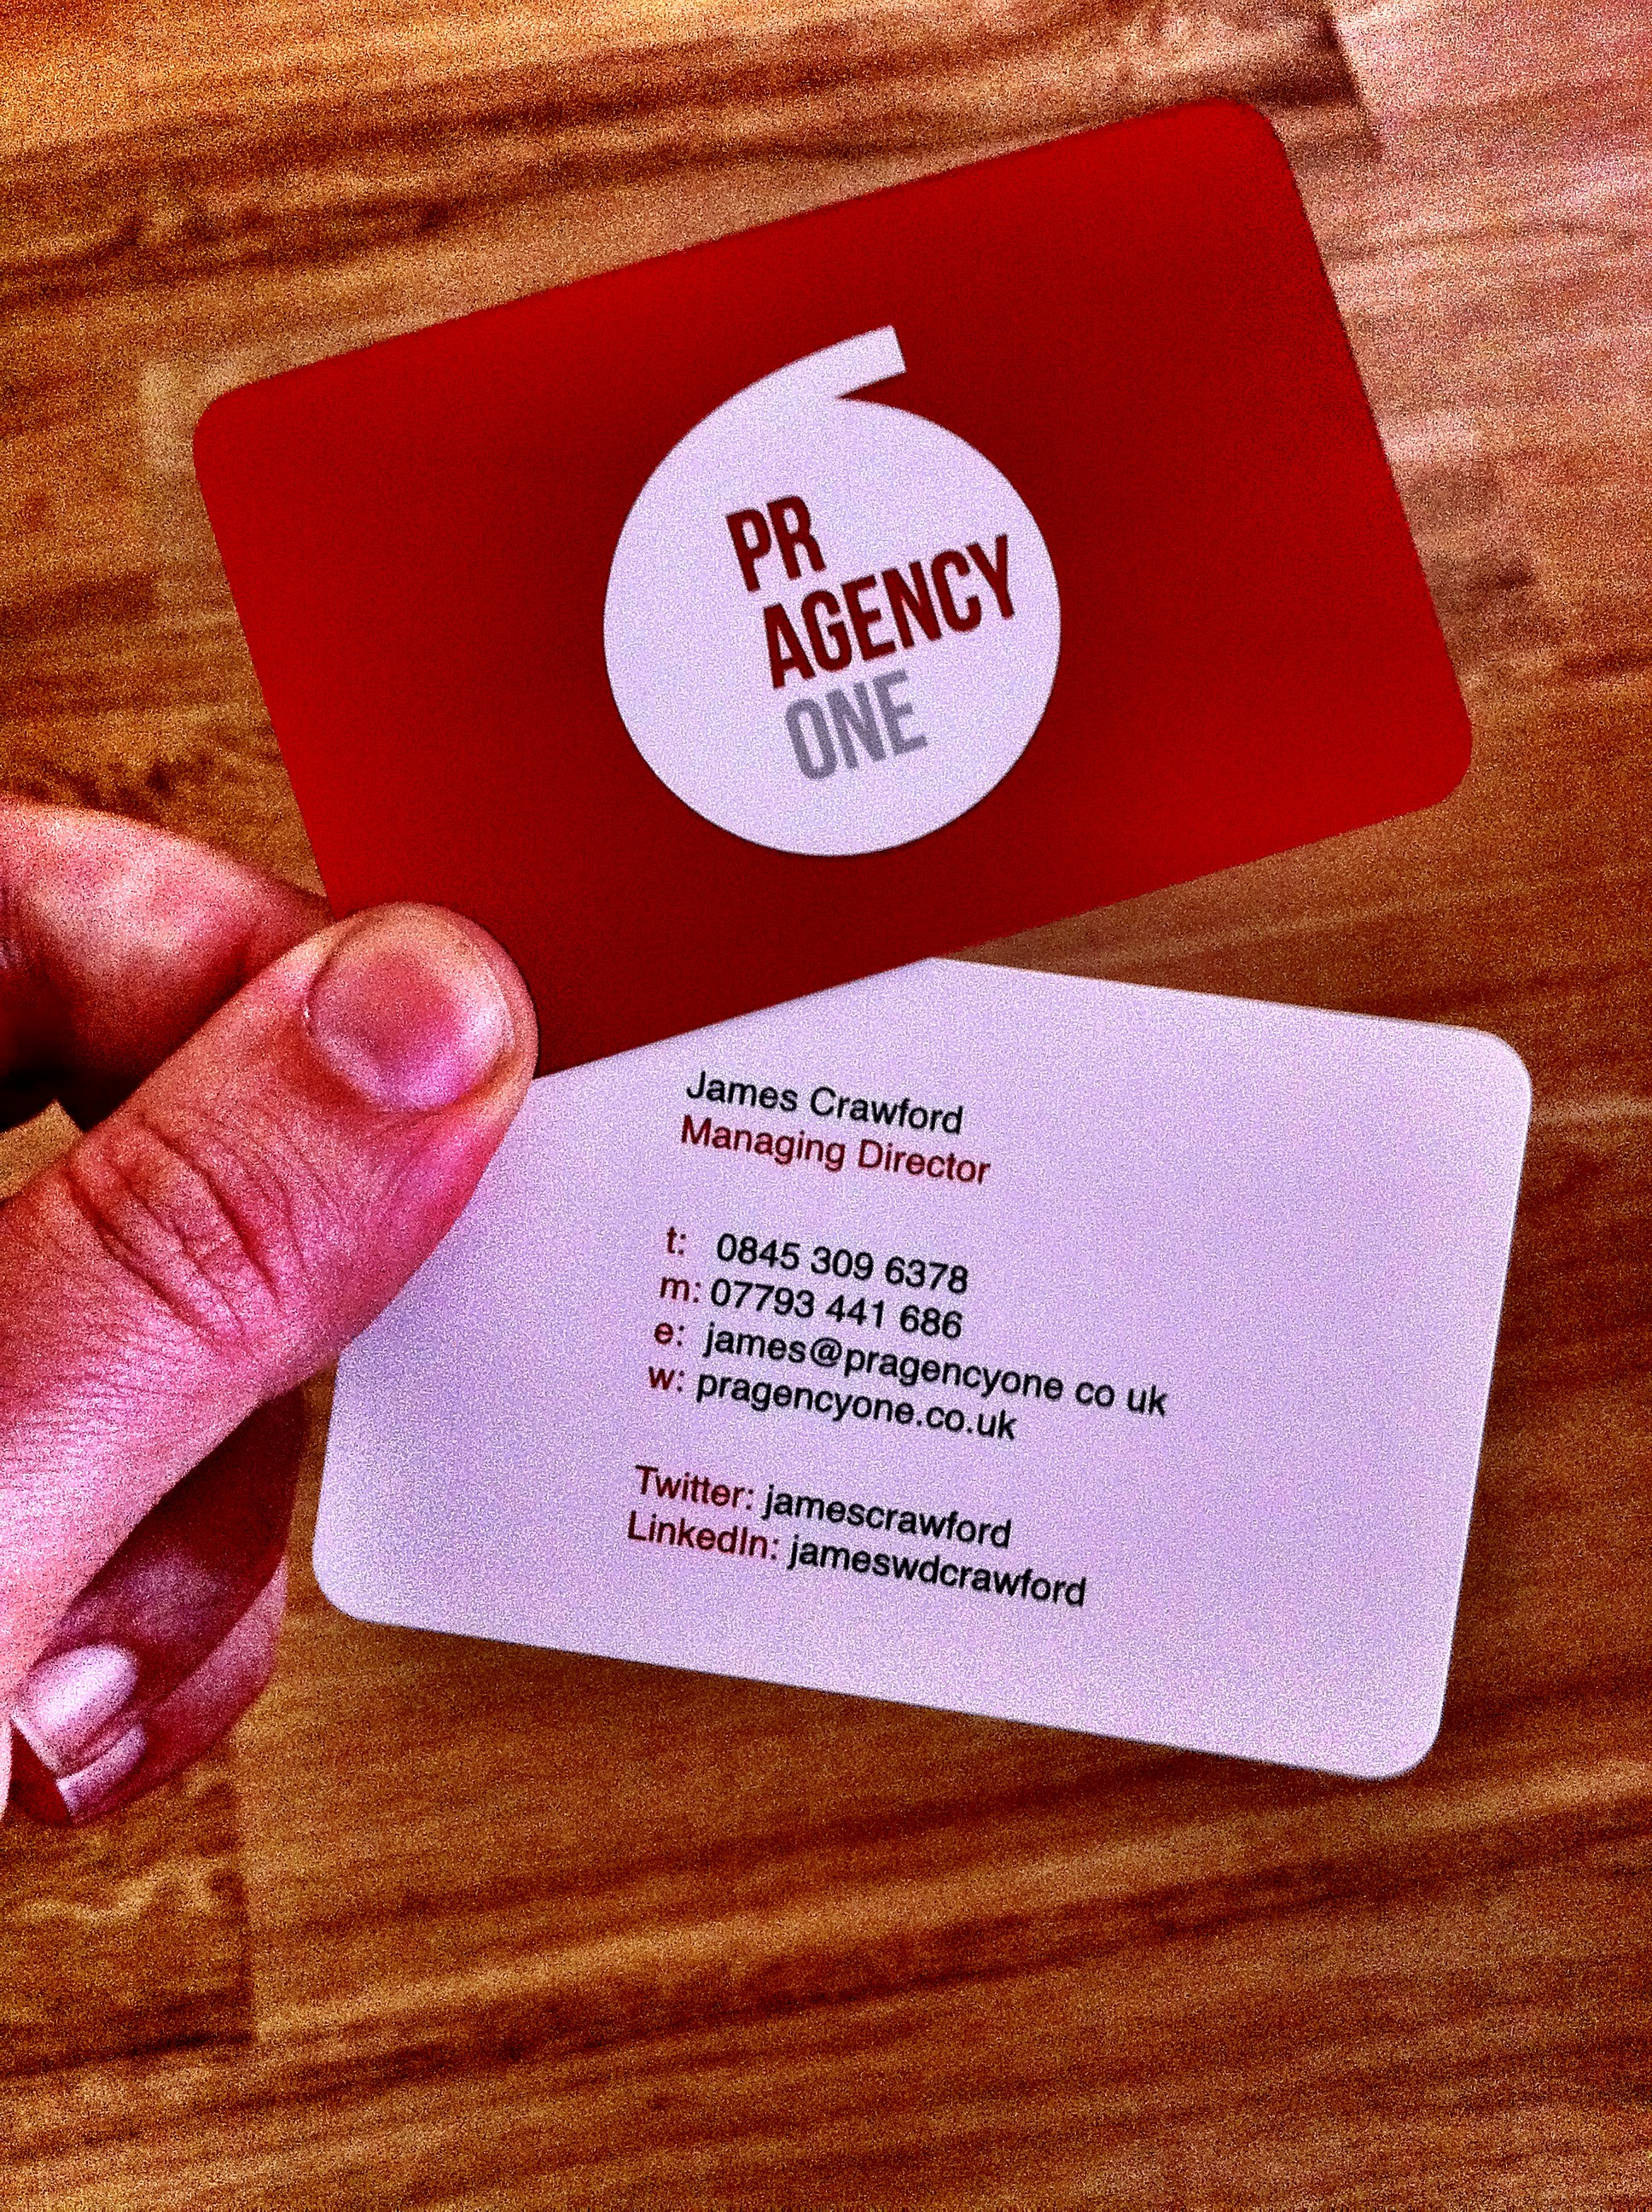 A manchester pr agency and its identity pr agency one even in this digital age the business card still has its place in creating a corporate identity the competitive manchester pr agency scene is no different colourmoves